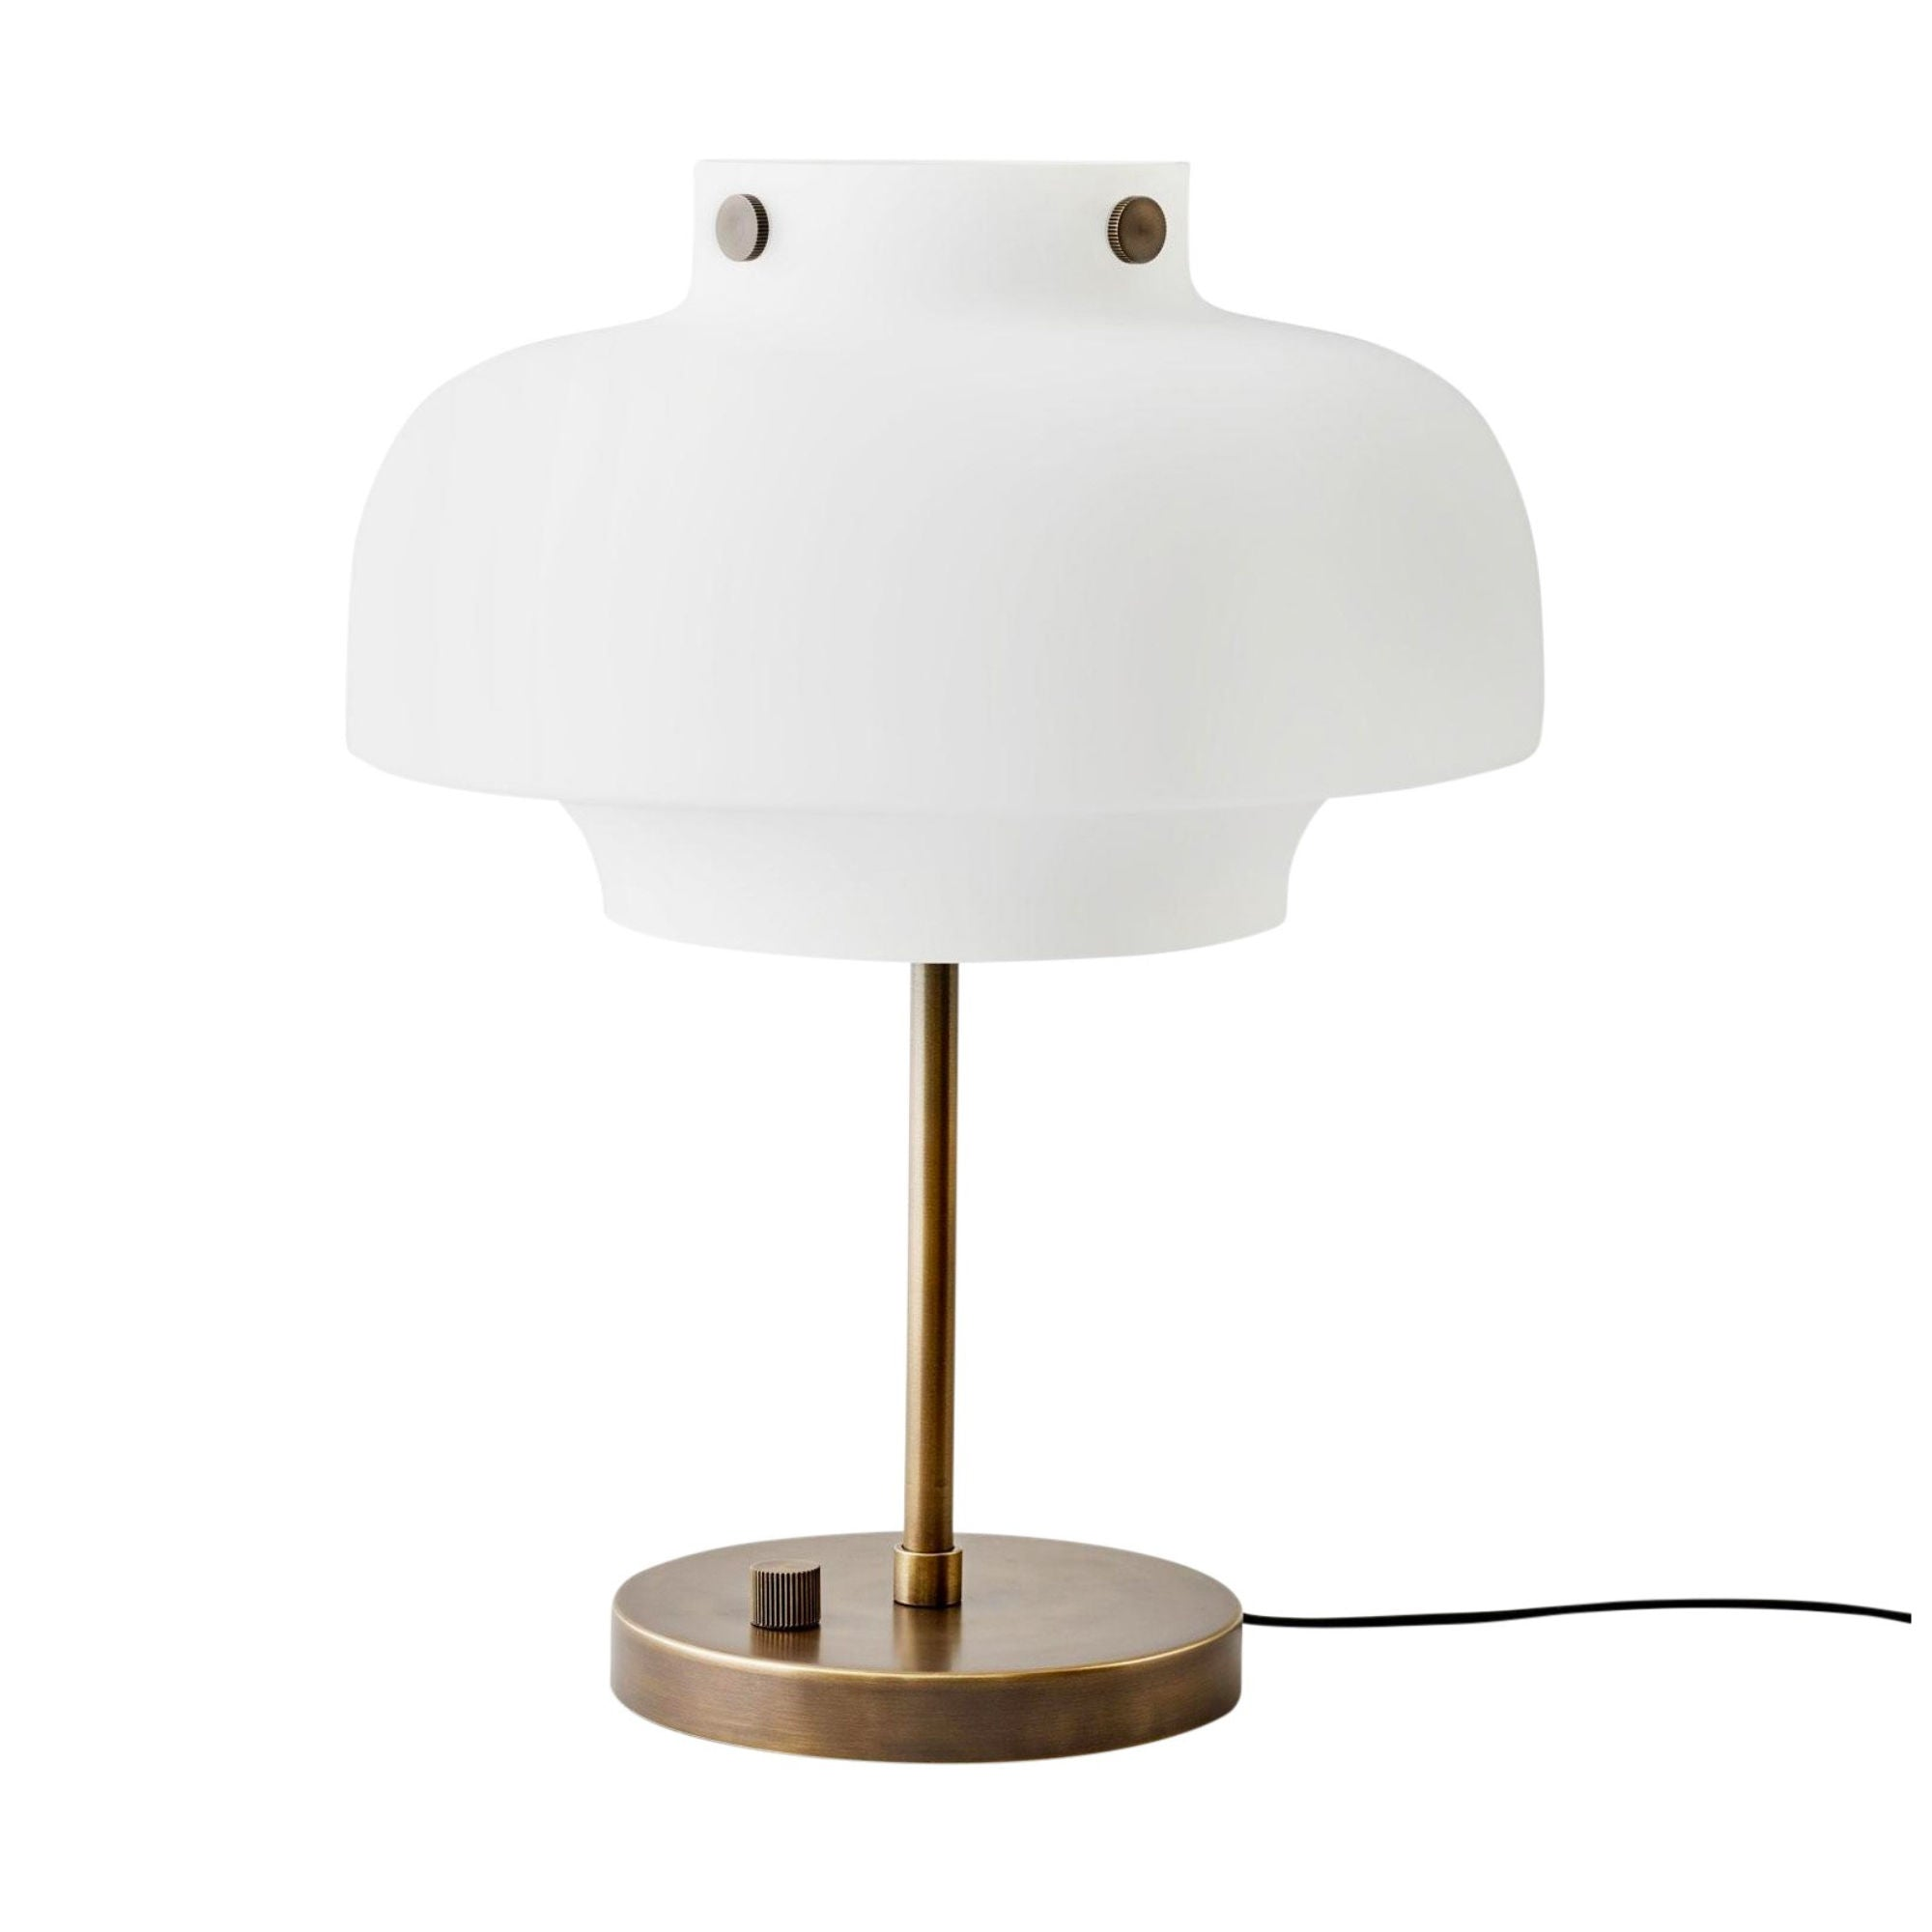 SC13 Copenhagen table lamp